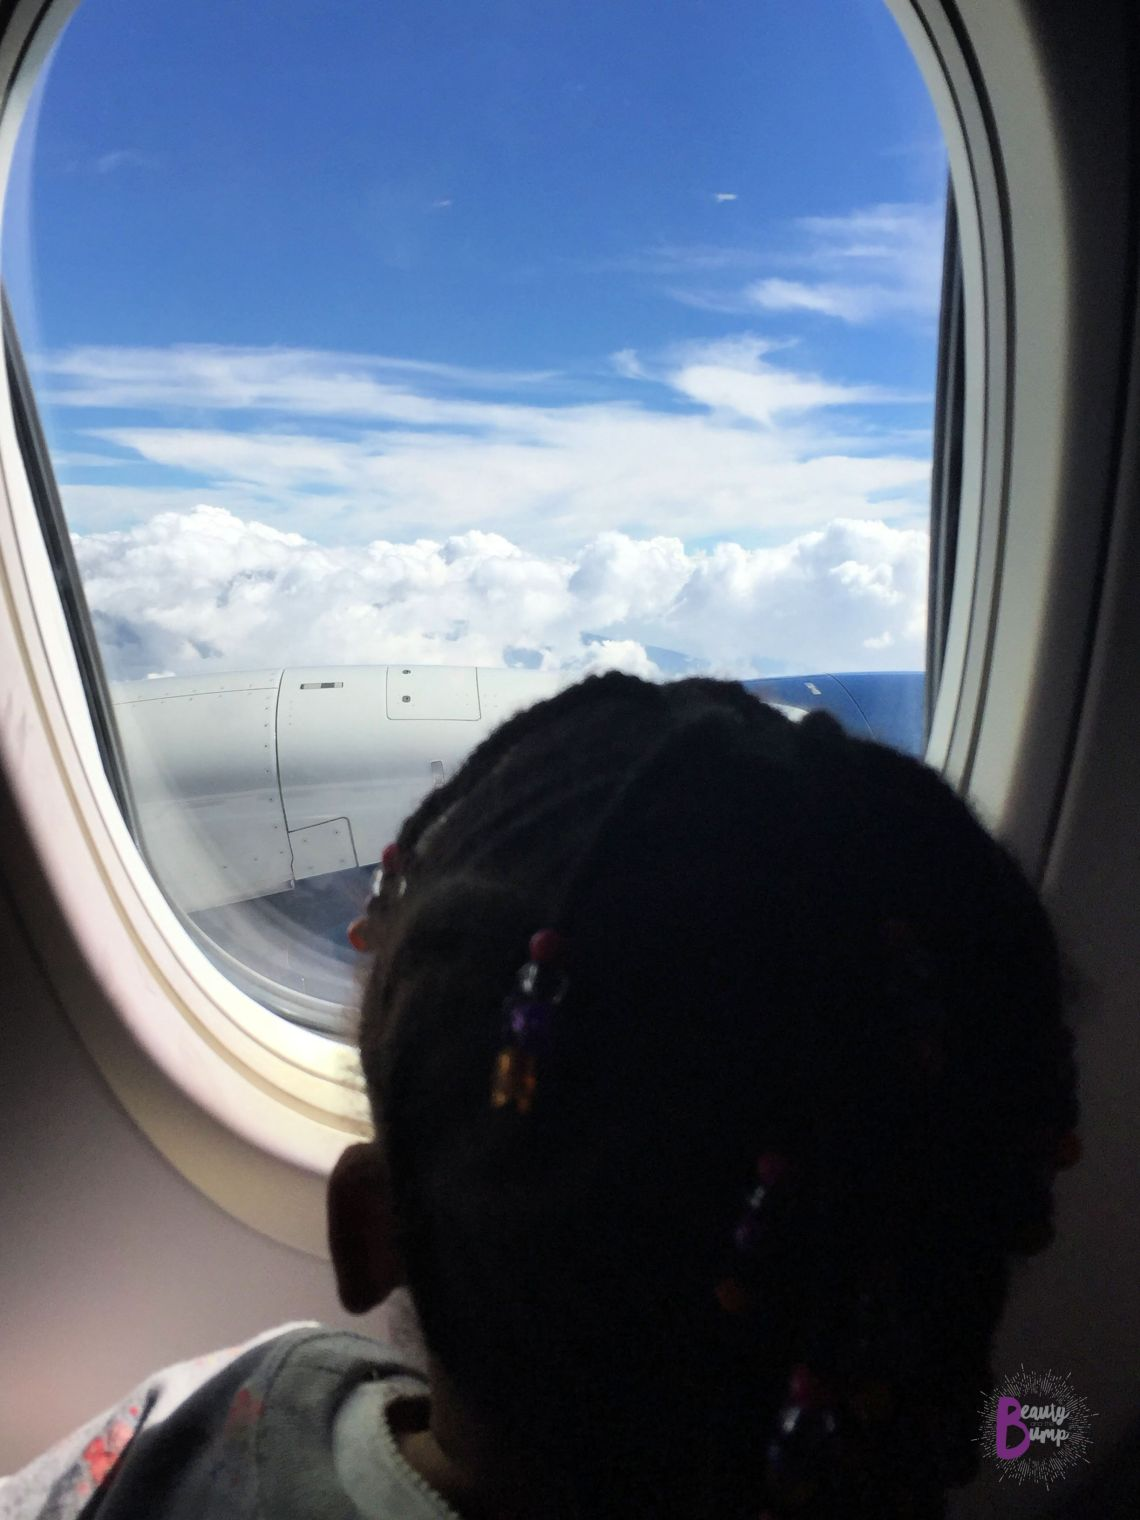 TRaveling with kids Get the kid a window seat so that they are able to see the take-off and landing, as well as the clouds.